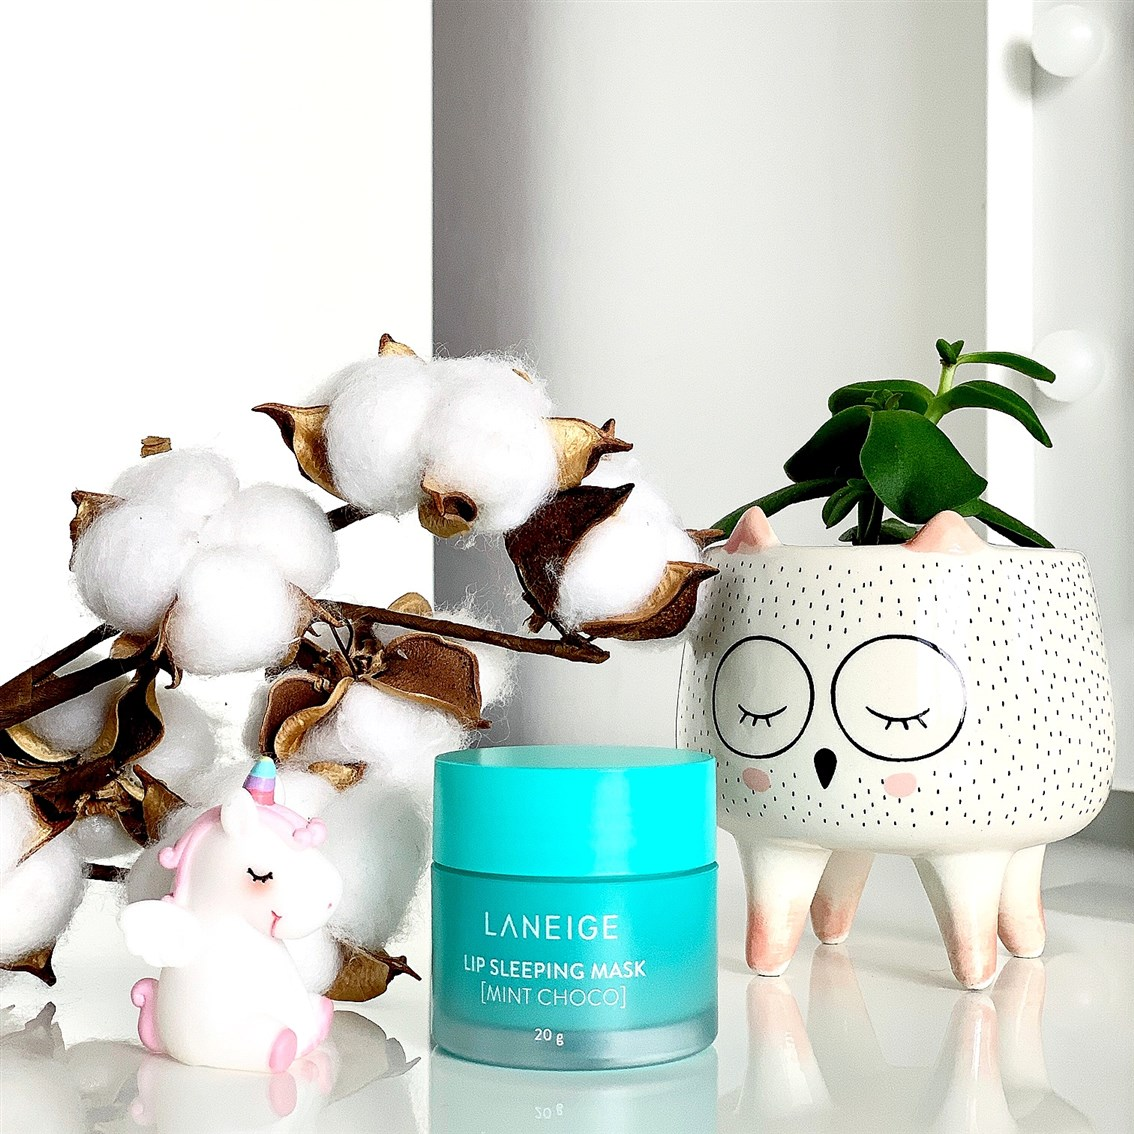 Laneige Lip Sleeping Mask Mint Choco blog